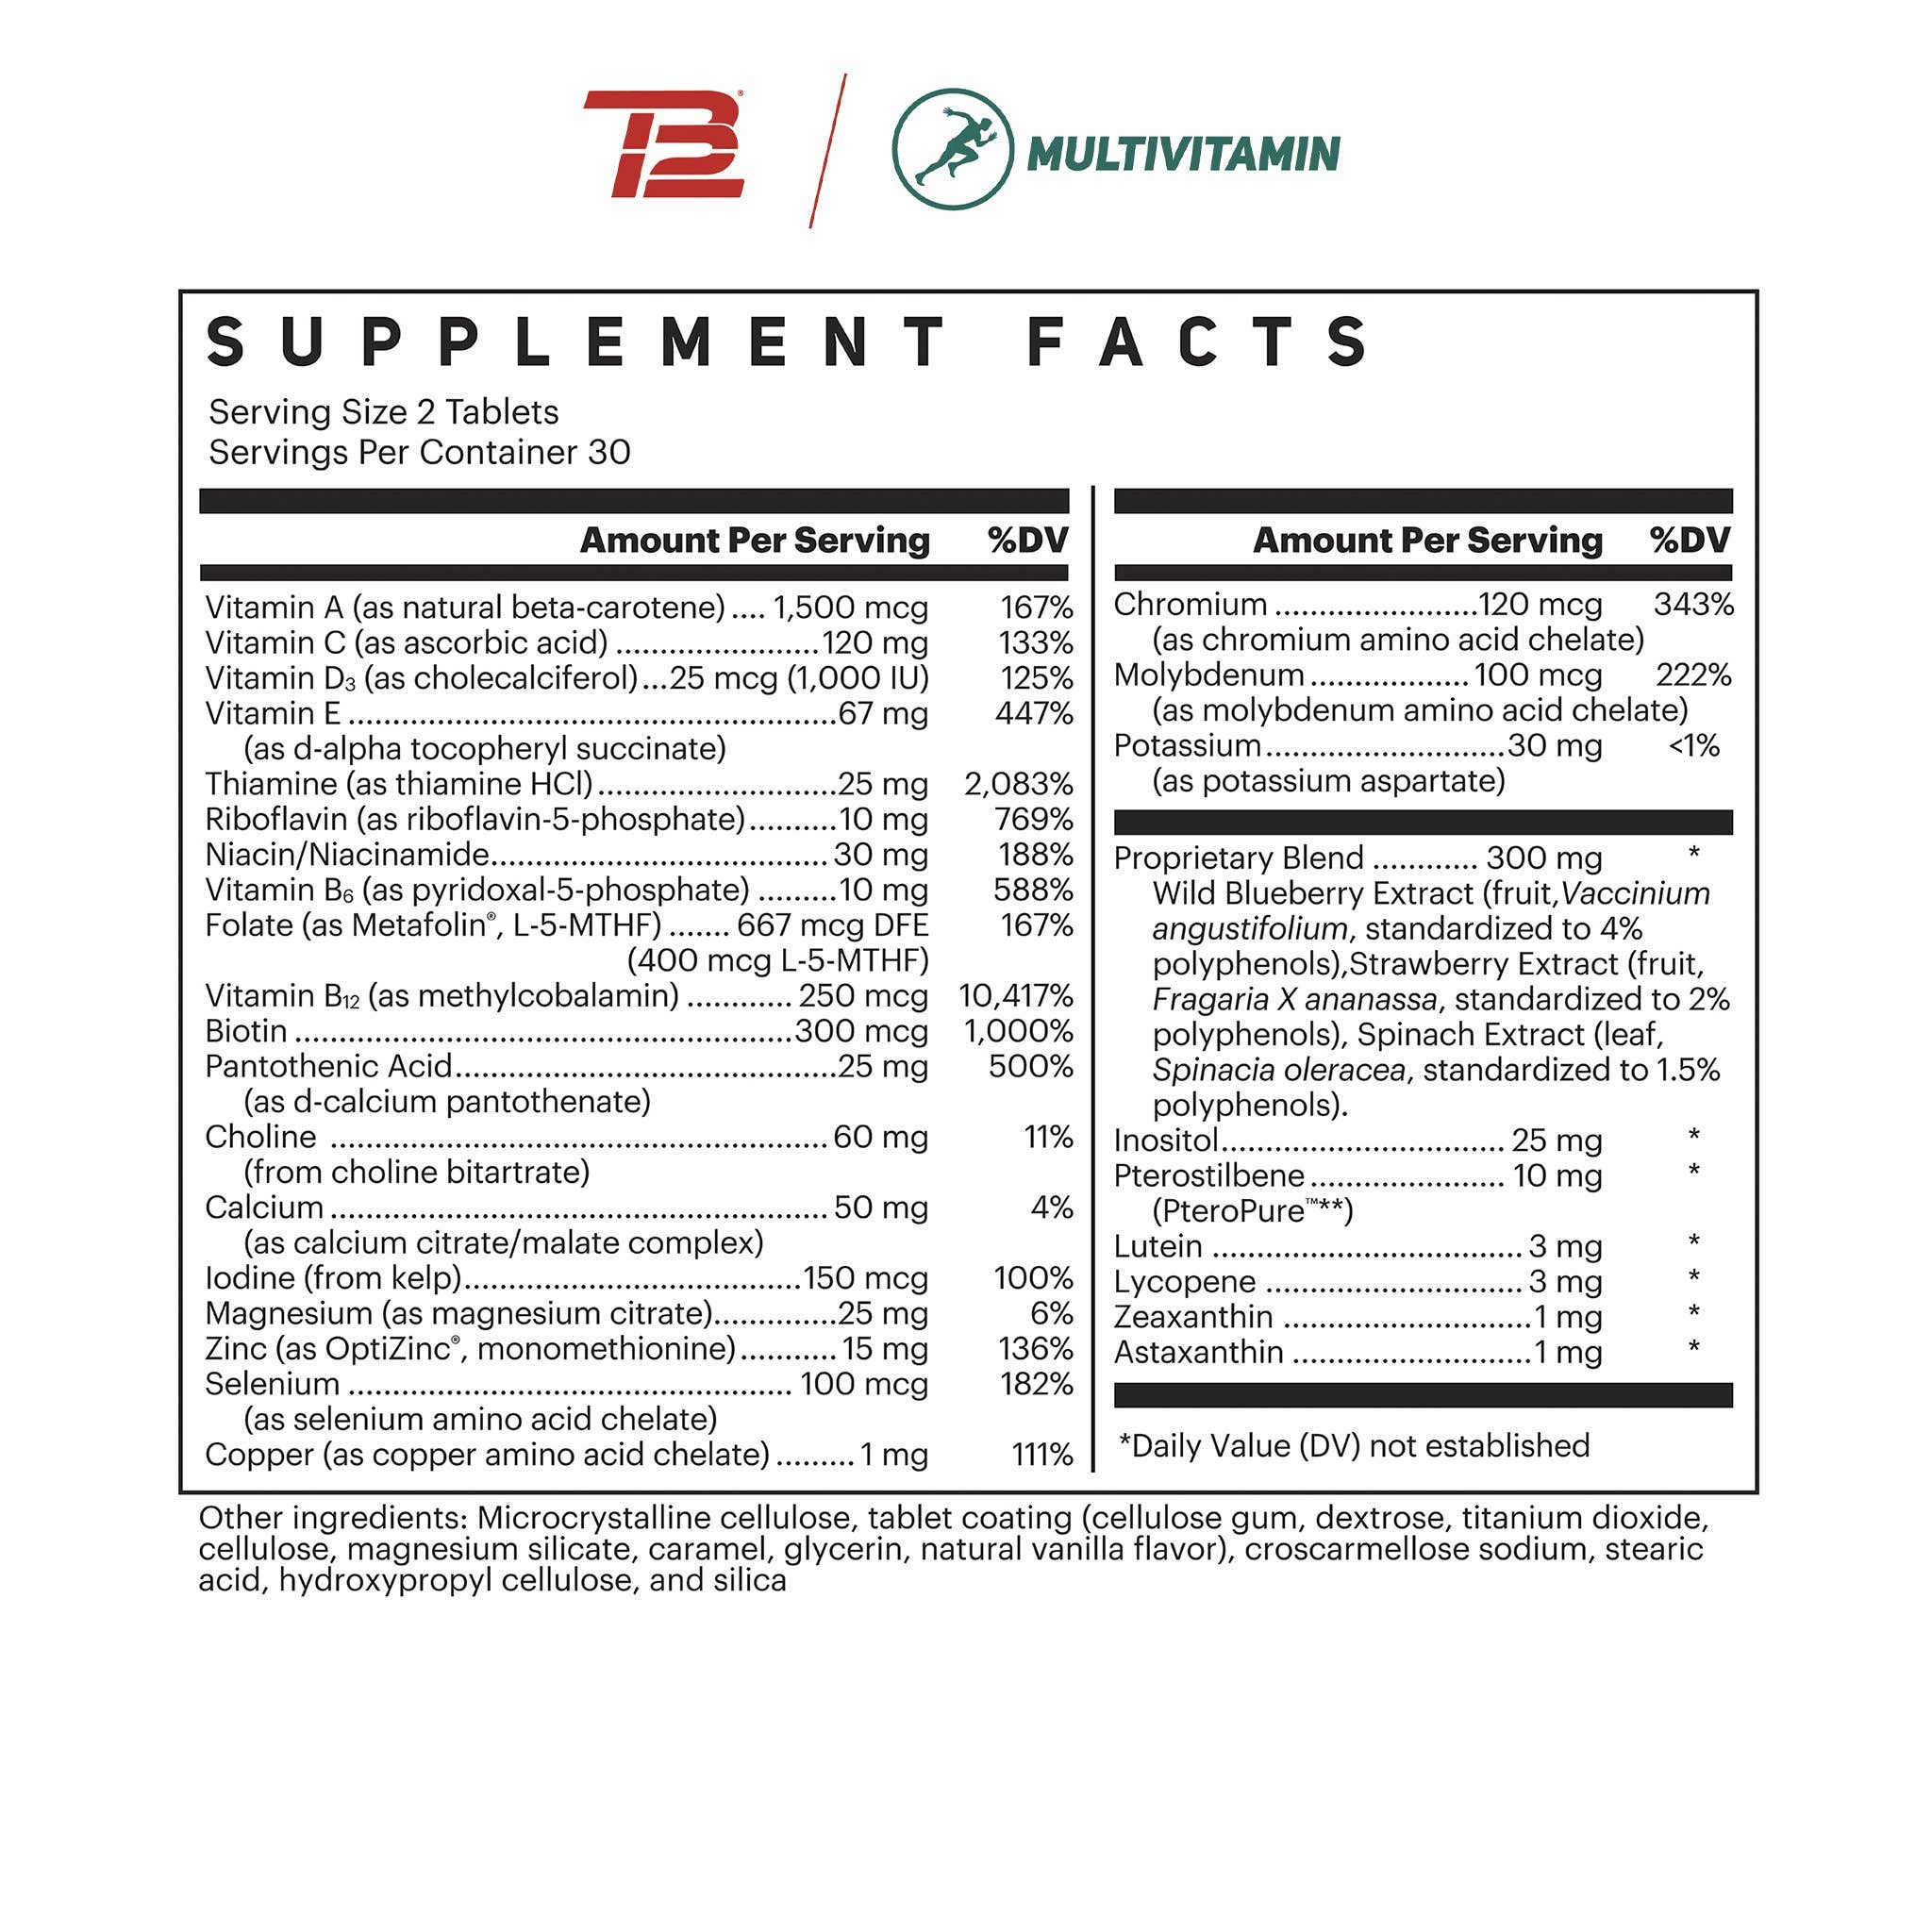 TB12 Multivitamin Facts and Ingredients